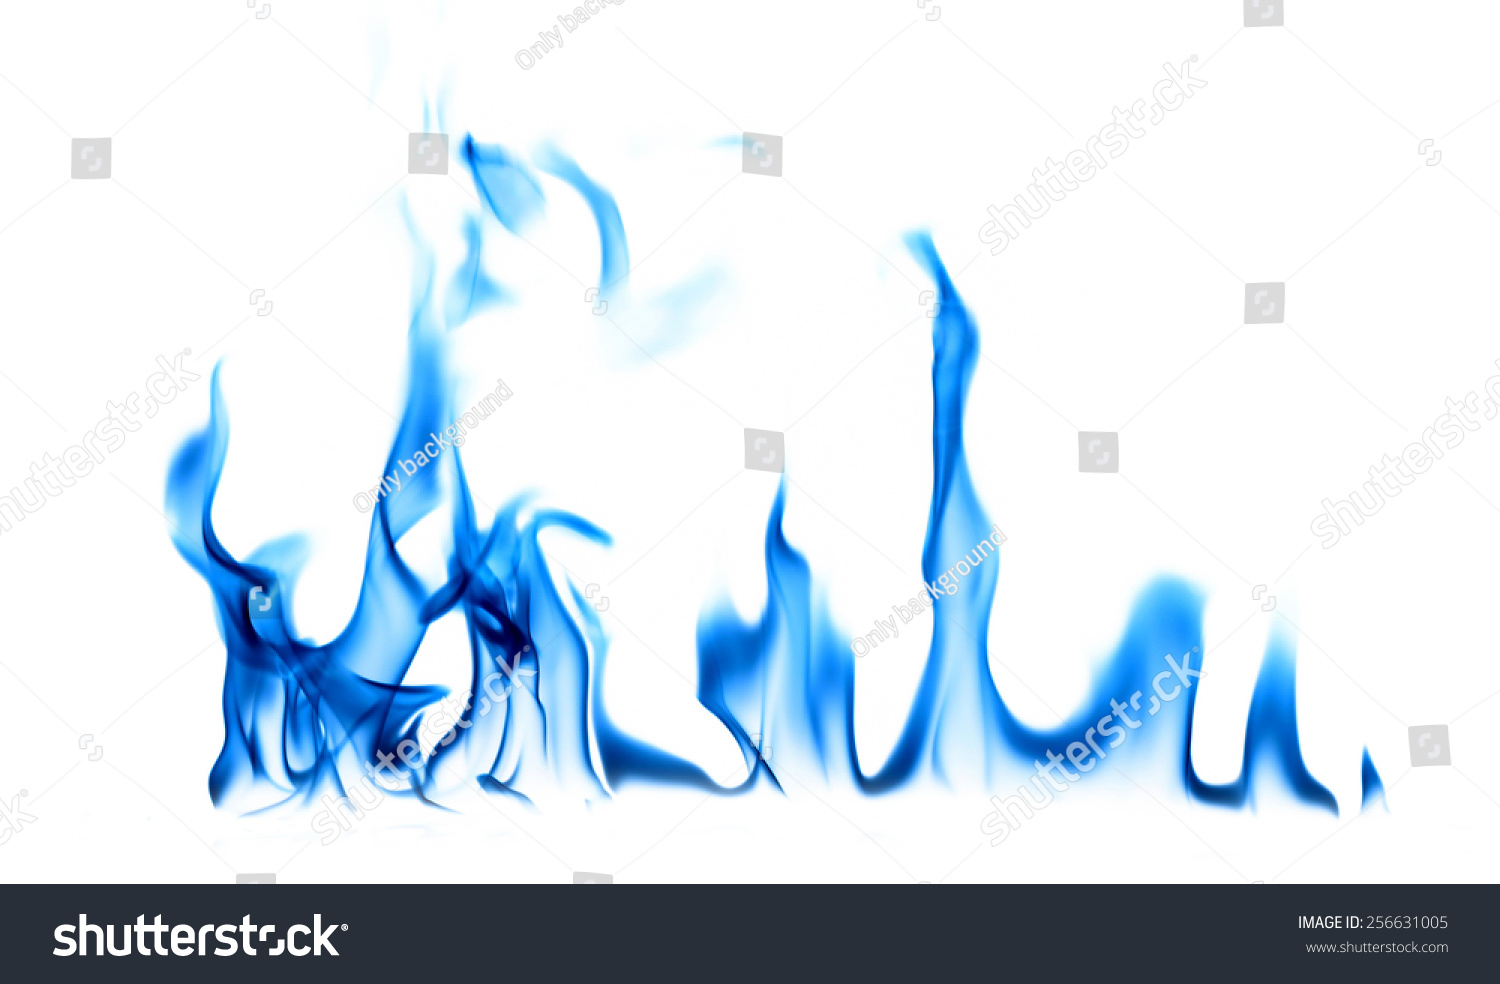 blue flames white background pictures to pin on pinterest